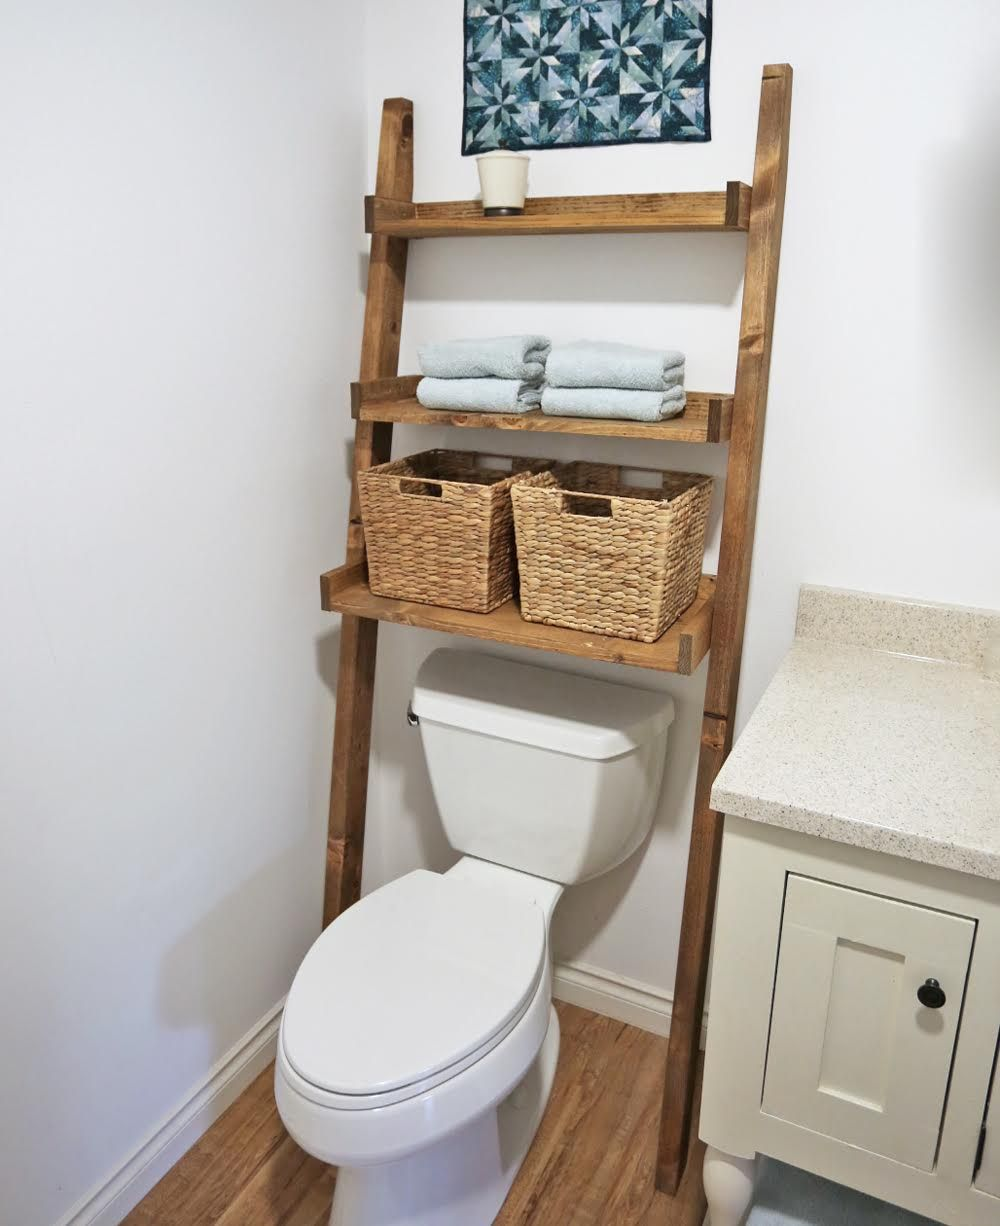 10 Amazing Ideas To Utilize The Space Under The Sink For Storage: 47 Ideas For Repurposing Old Ladders Farmhouse Style